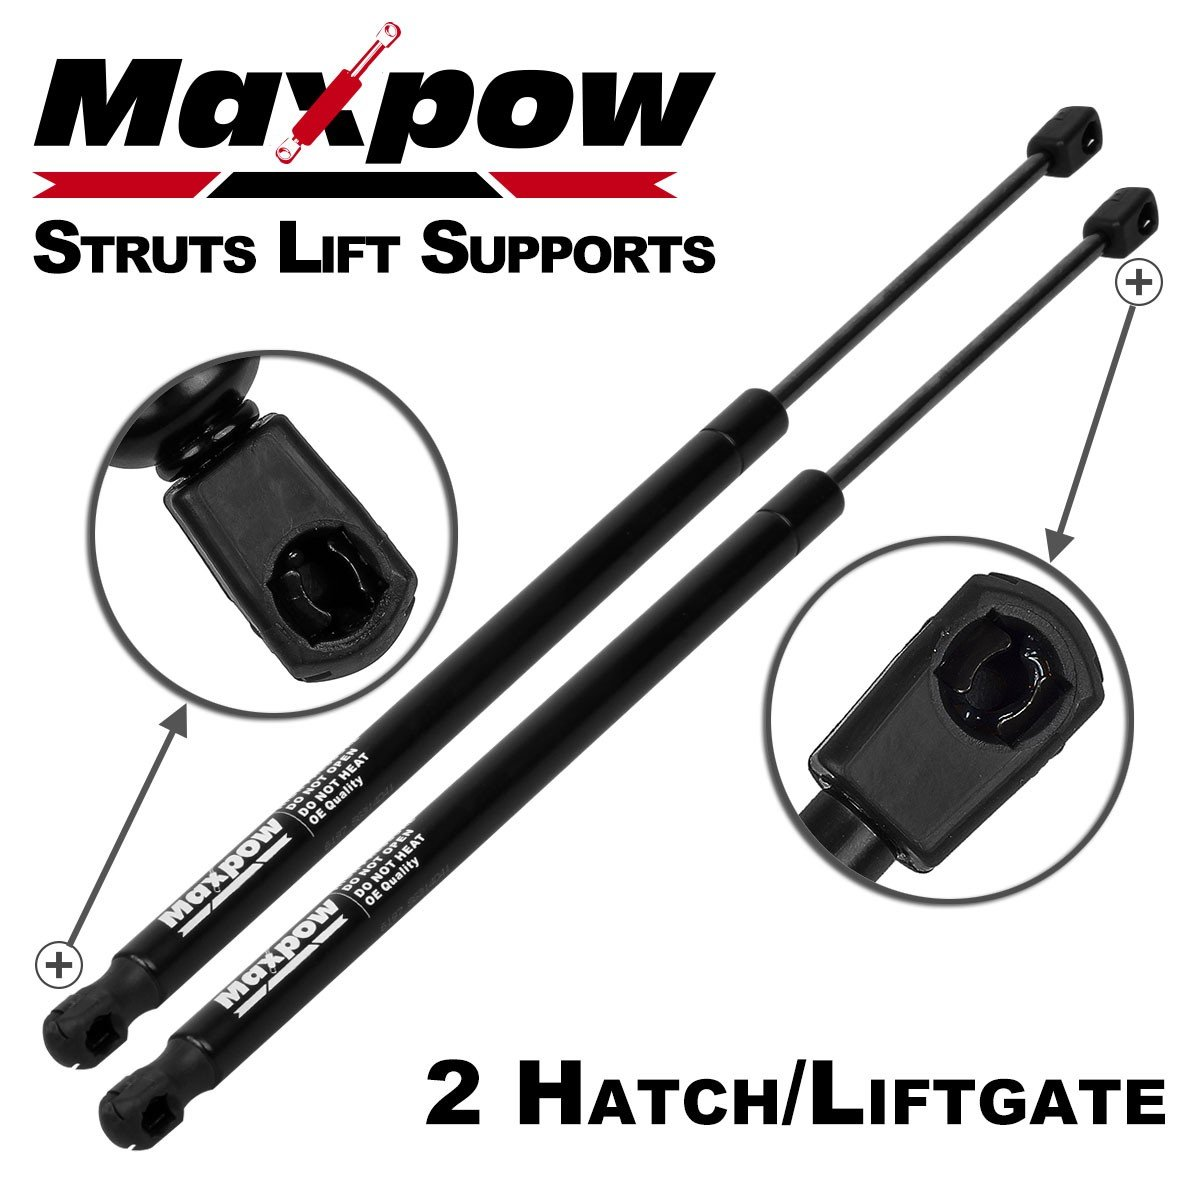 Maxpow 6137 Compatible With 2005 2006 2007 2008 2009 2010 2011 2012 2013 Nissan Xterra Rear Tailgate Hatch Lift Supports Struts Shocks Dampers 2Pcs